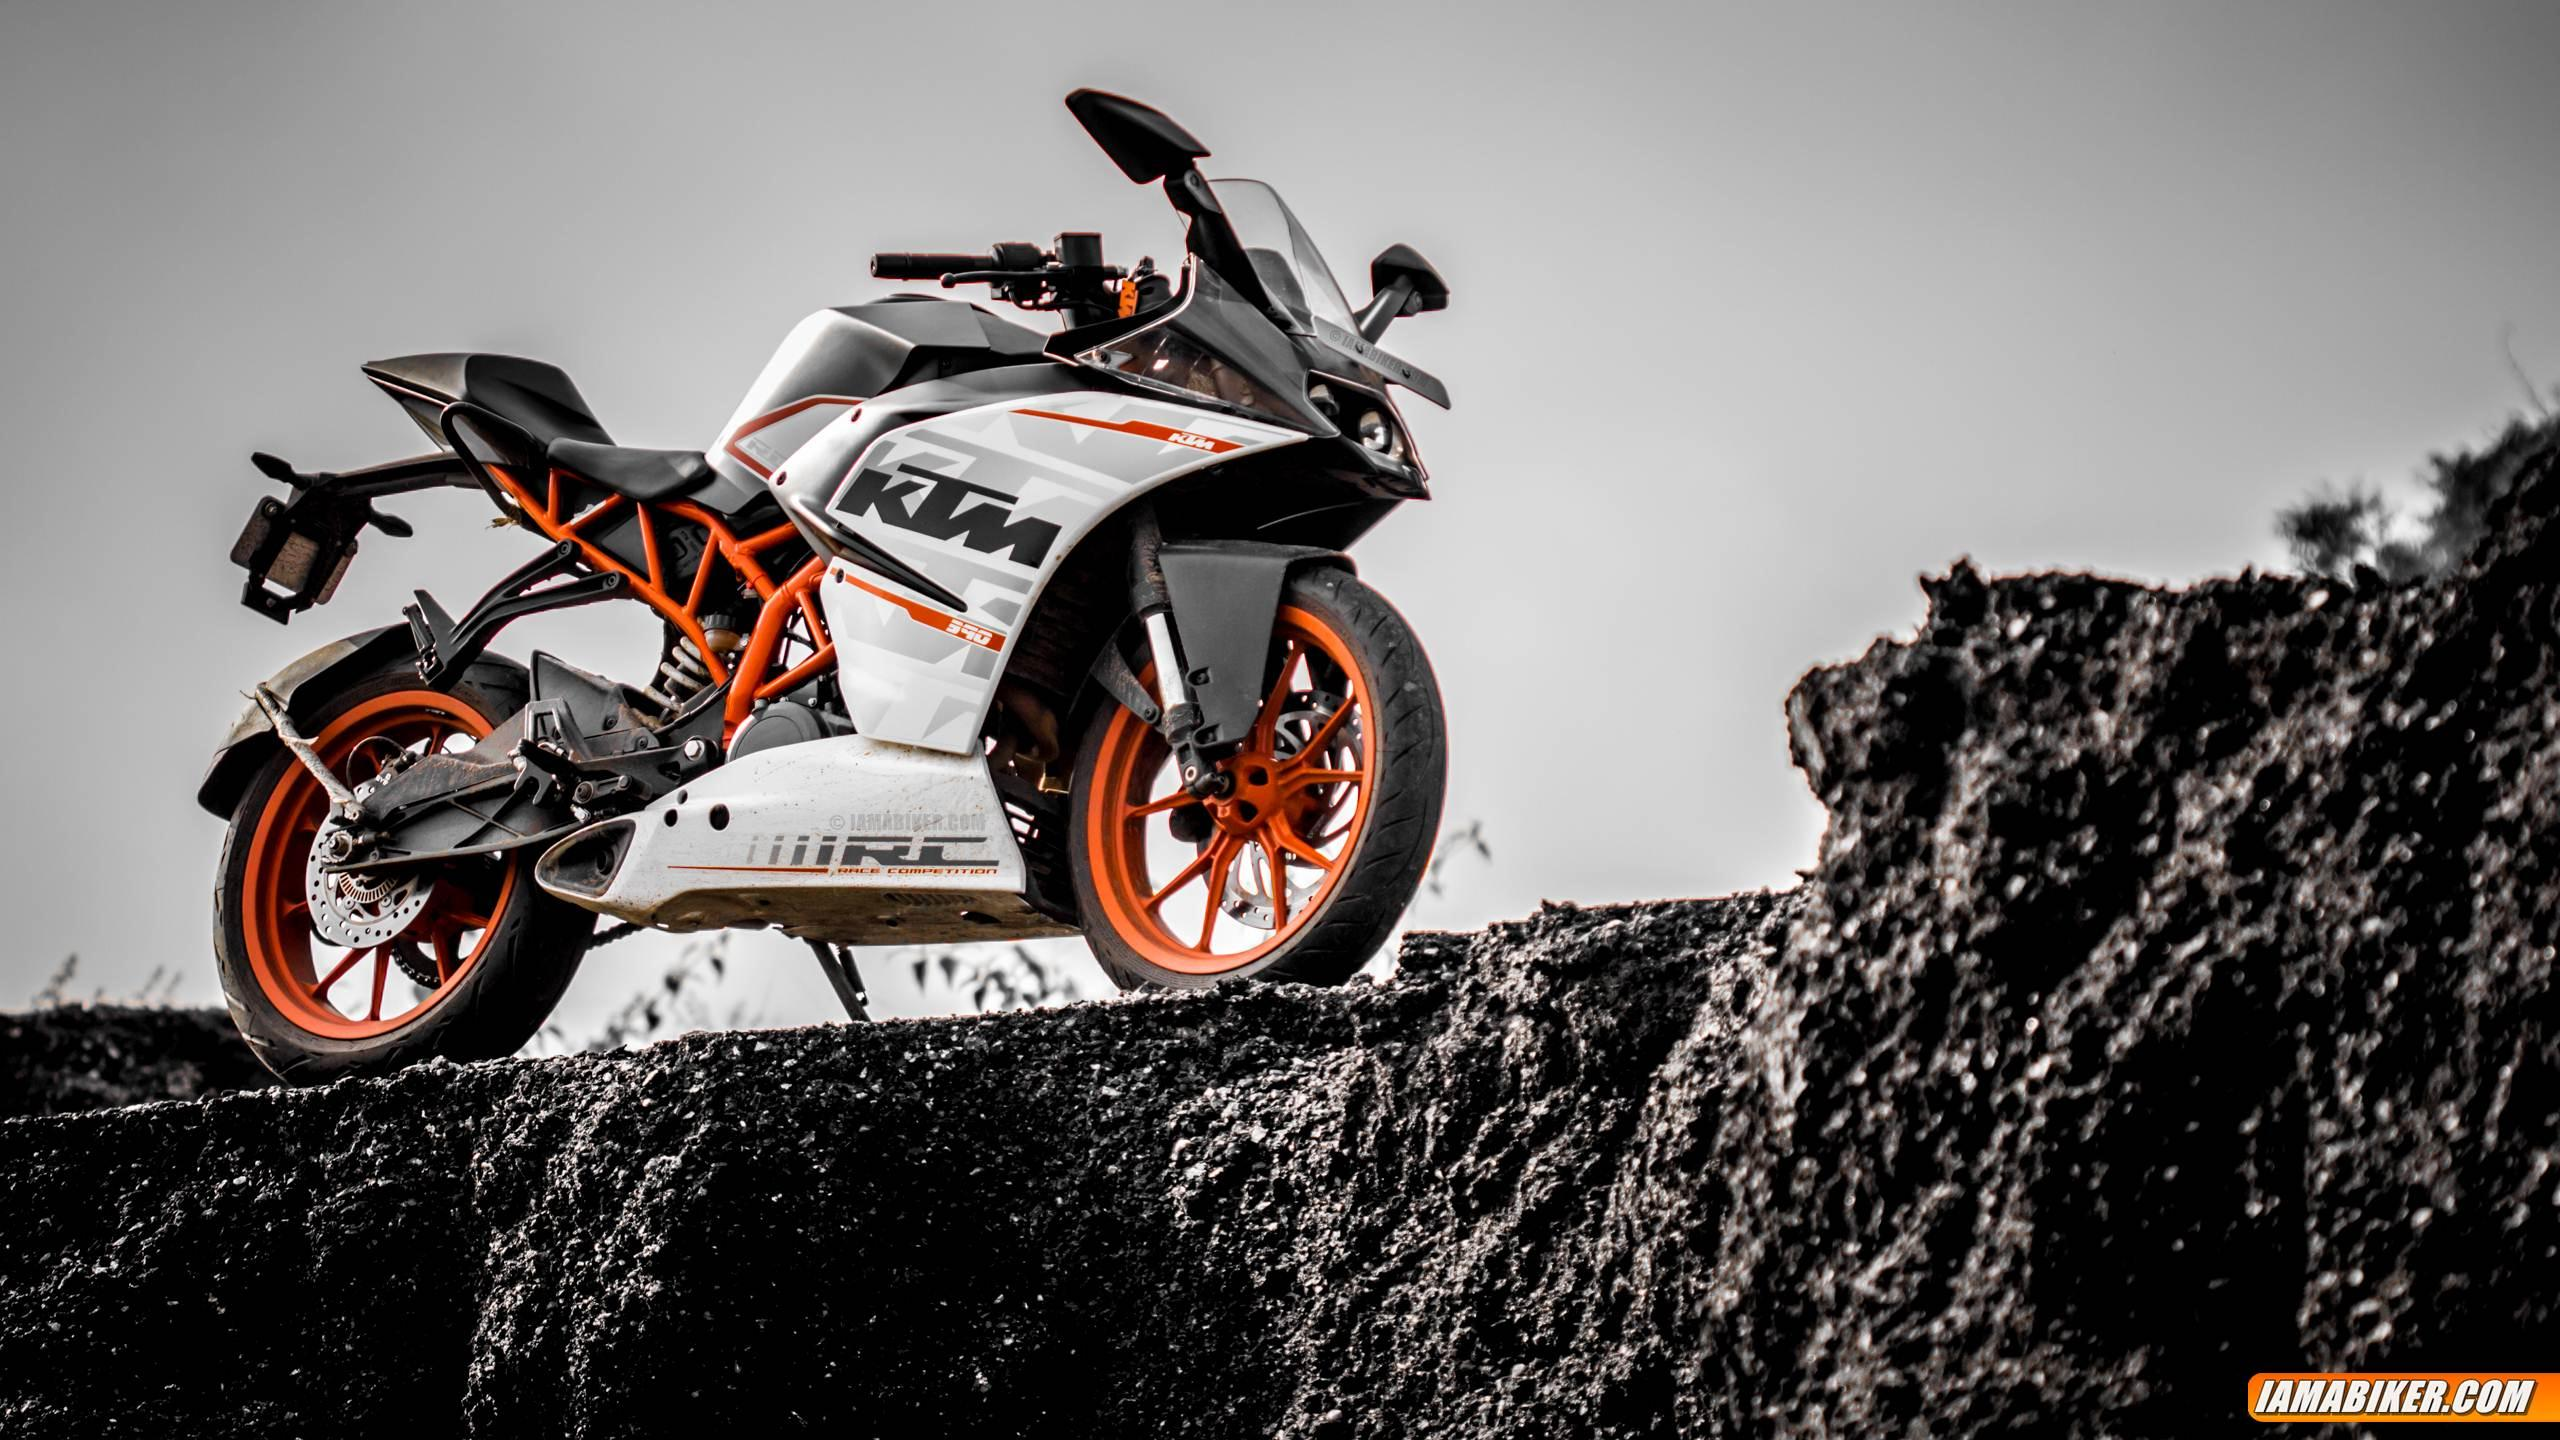 Ktm motorcycles hd wallpapers free wallaper downloads ktm sport - Ktm Rc 390 Wallpapers 4